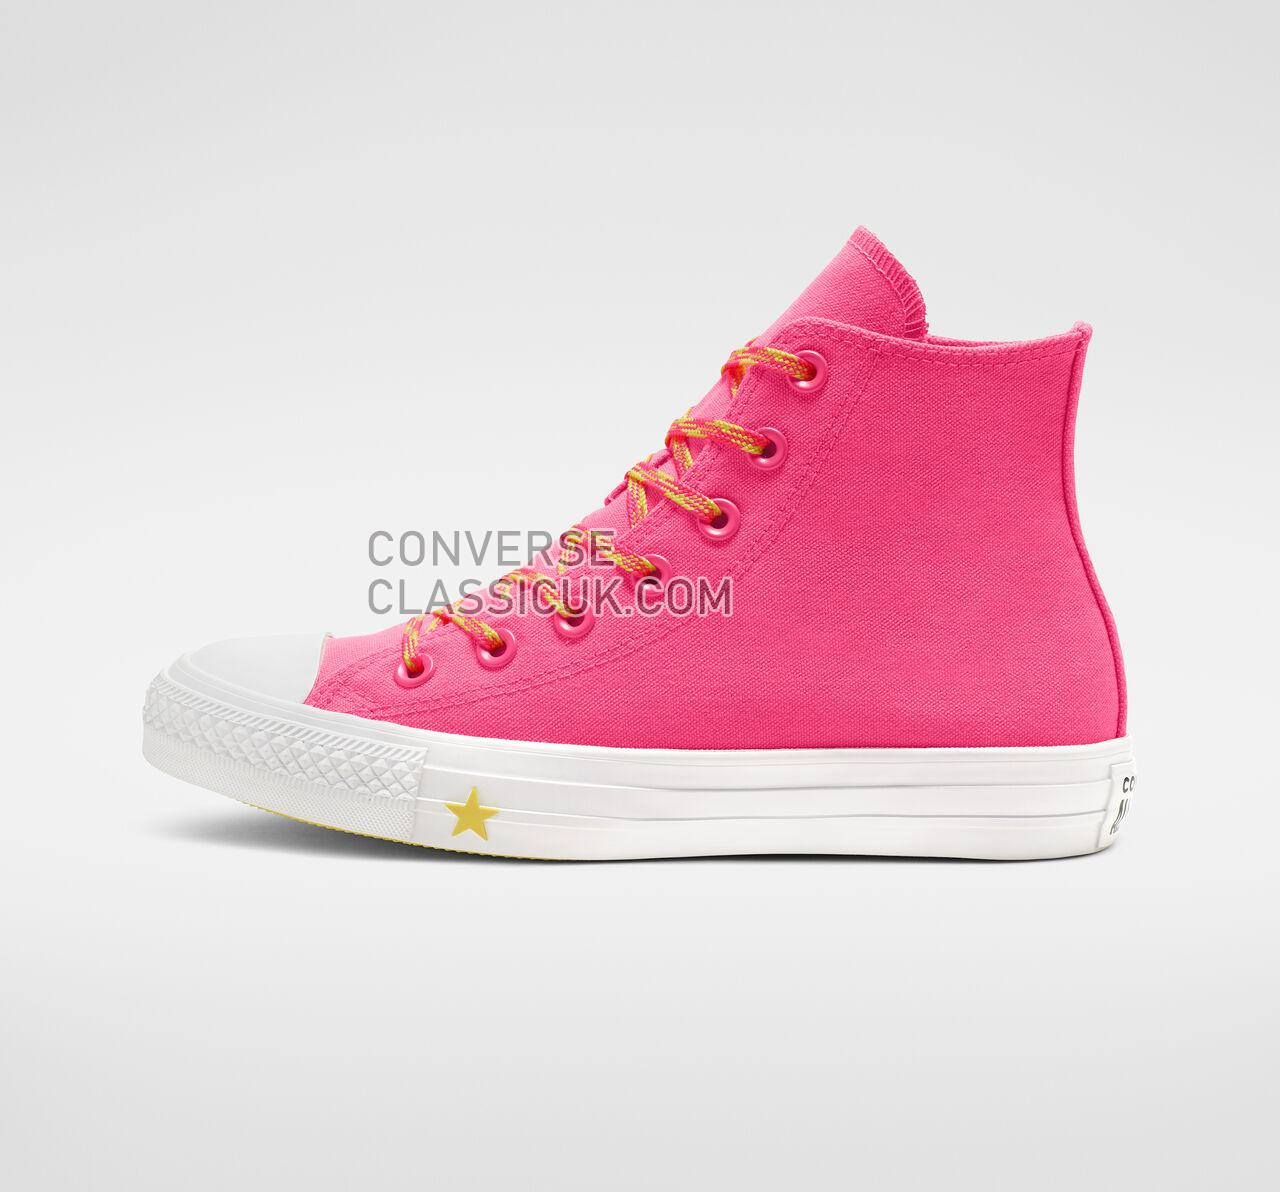 Converse Chuck Taylor All Star Glow Up High Top Womens 564122C Racer Pink/Fresh Yellow/White Shoes